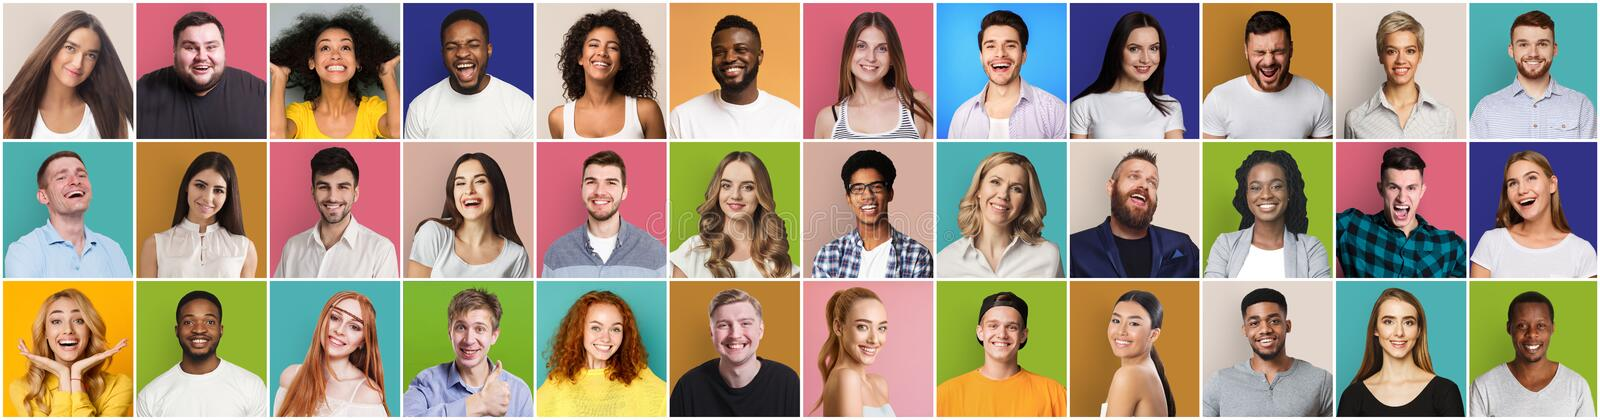 Collage of diversed people expressing positive emotions stock image